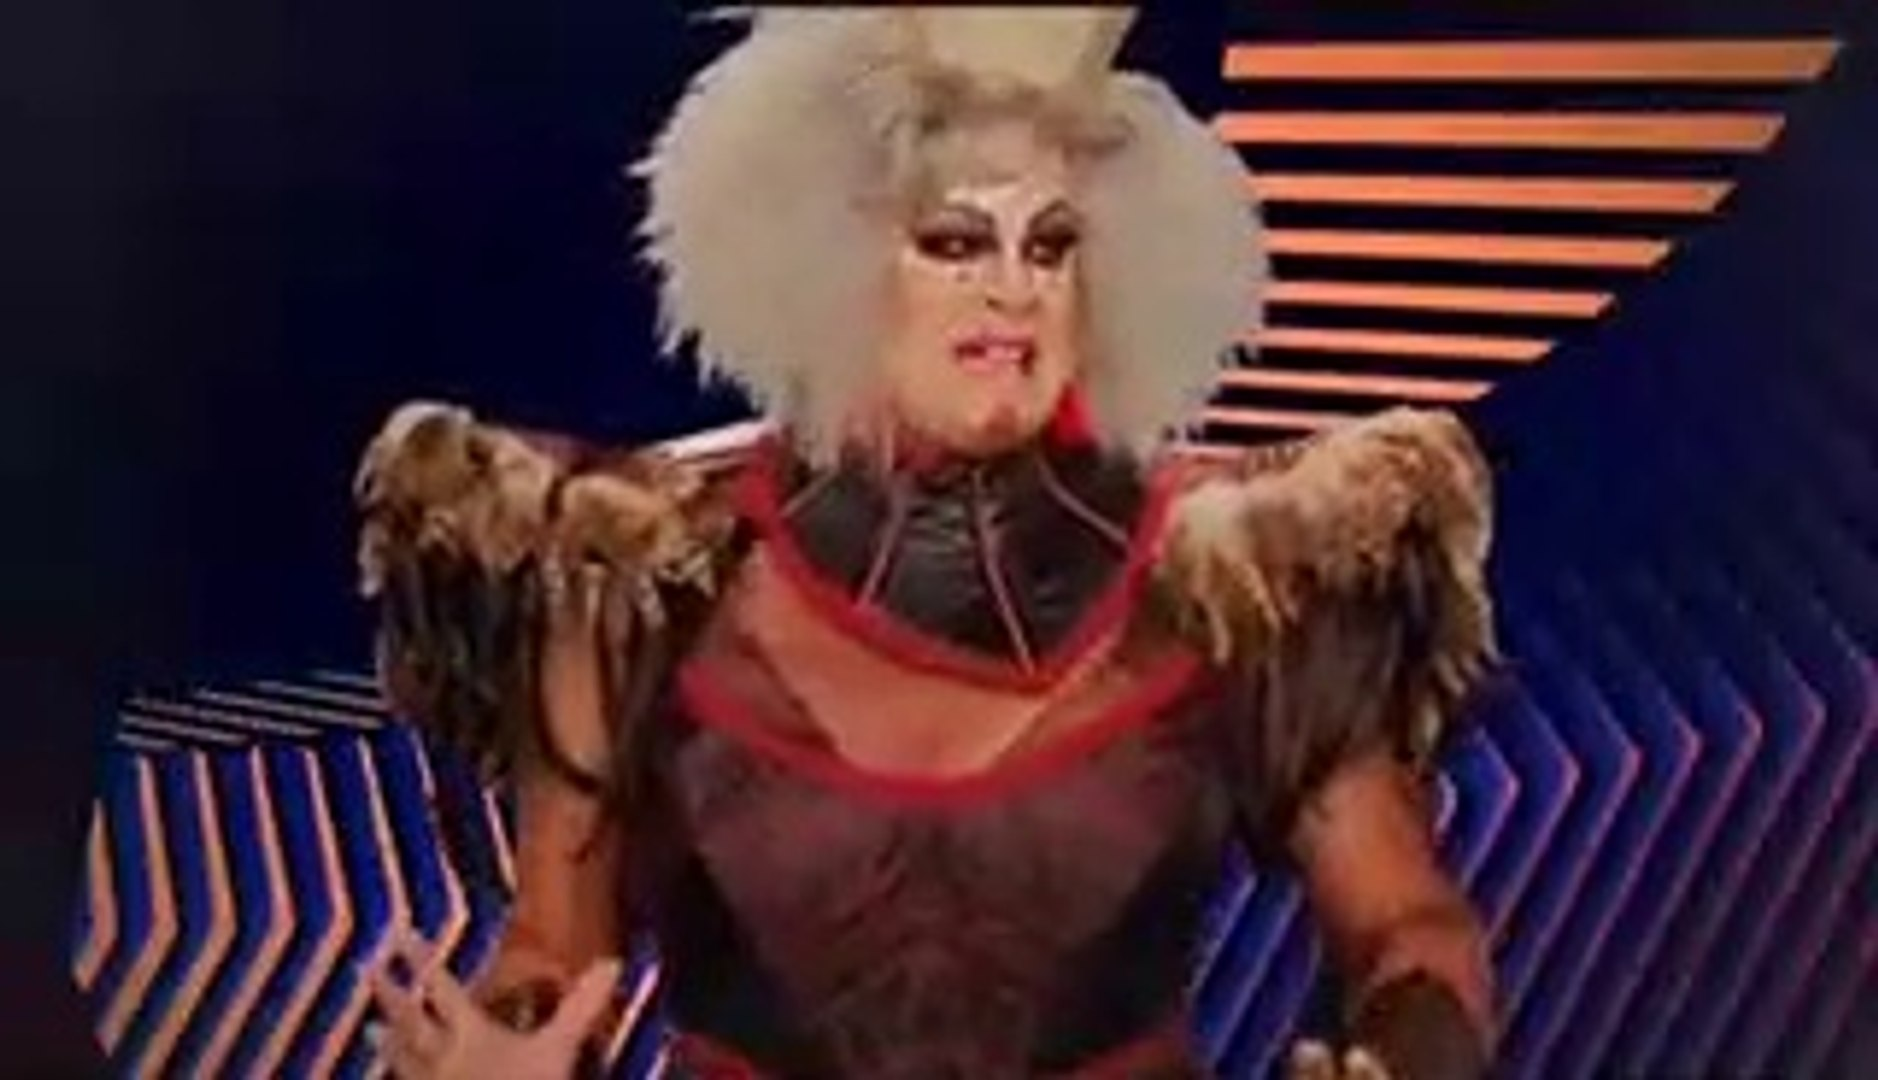 watch rupauls drag race season 11 episode 2 online free